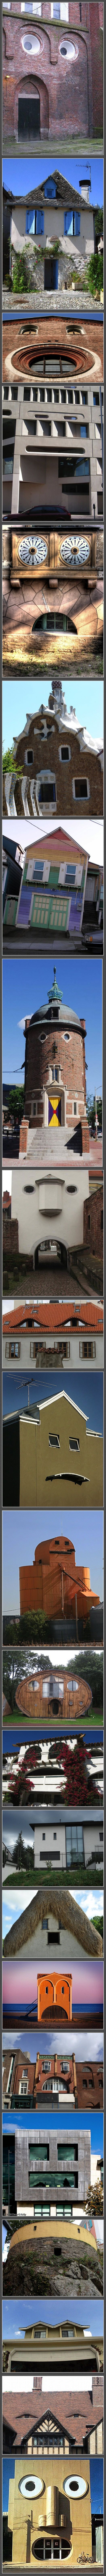 """#Funny #Architecture on #Pinterest  """"Buildings With Unintentionally Funny Faces"""" (Facade Faces)"""